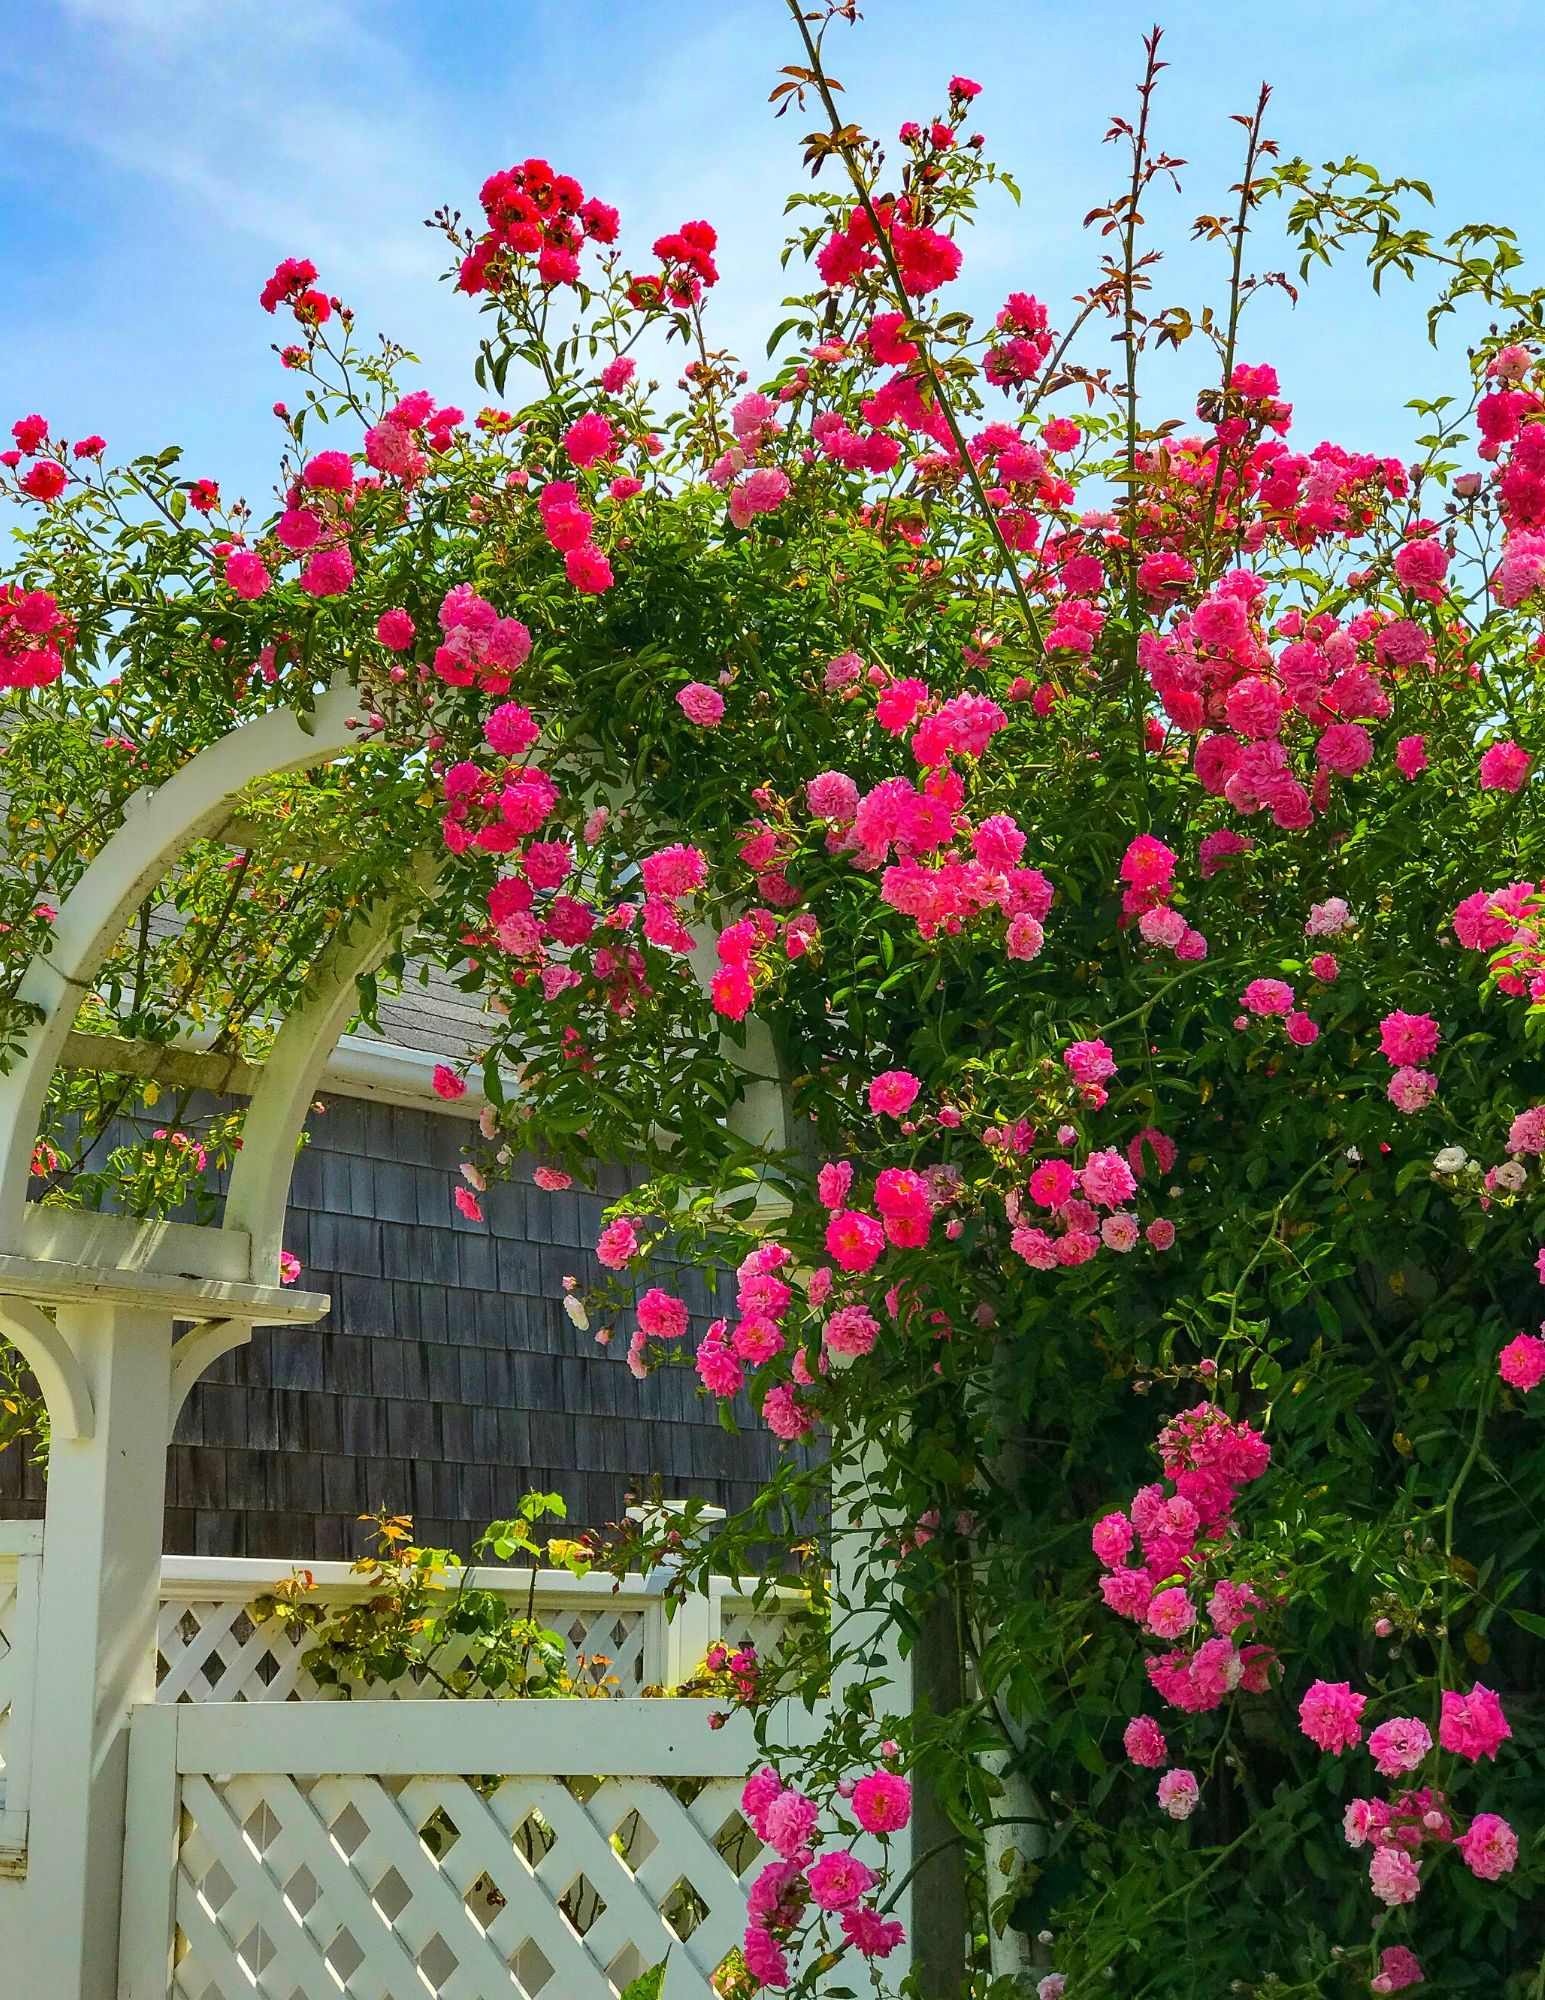 Nantucket Rose Covered Cottages in Sconset-11